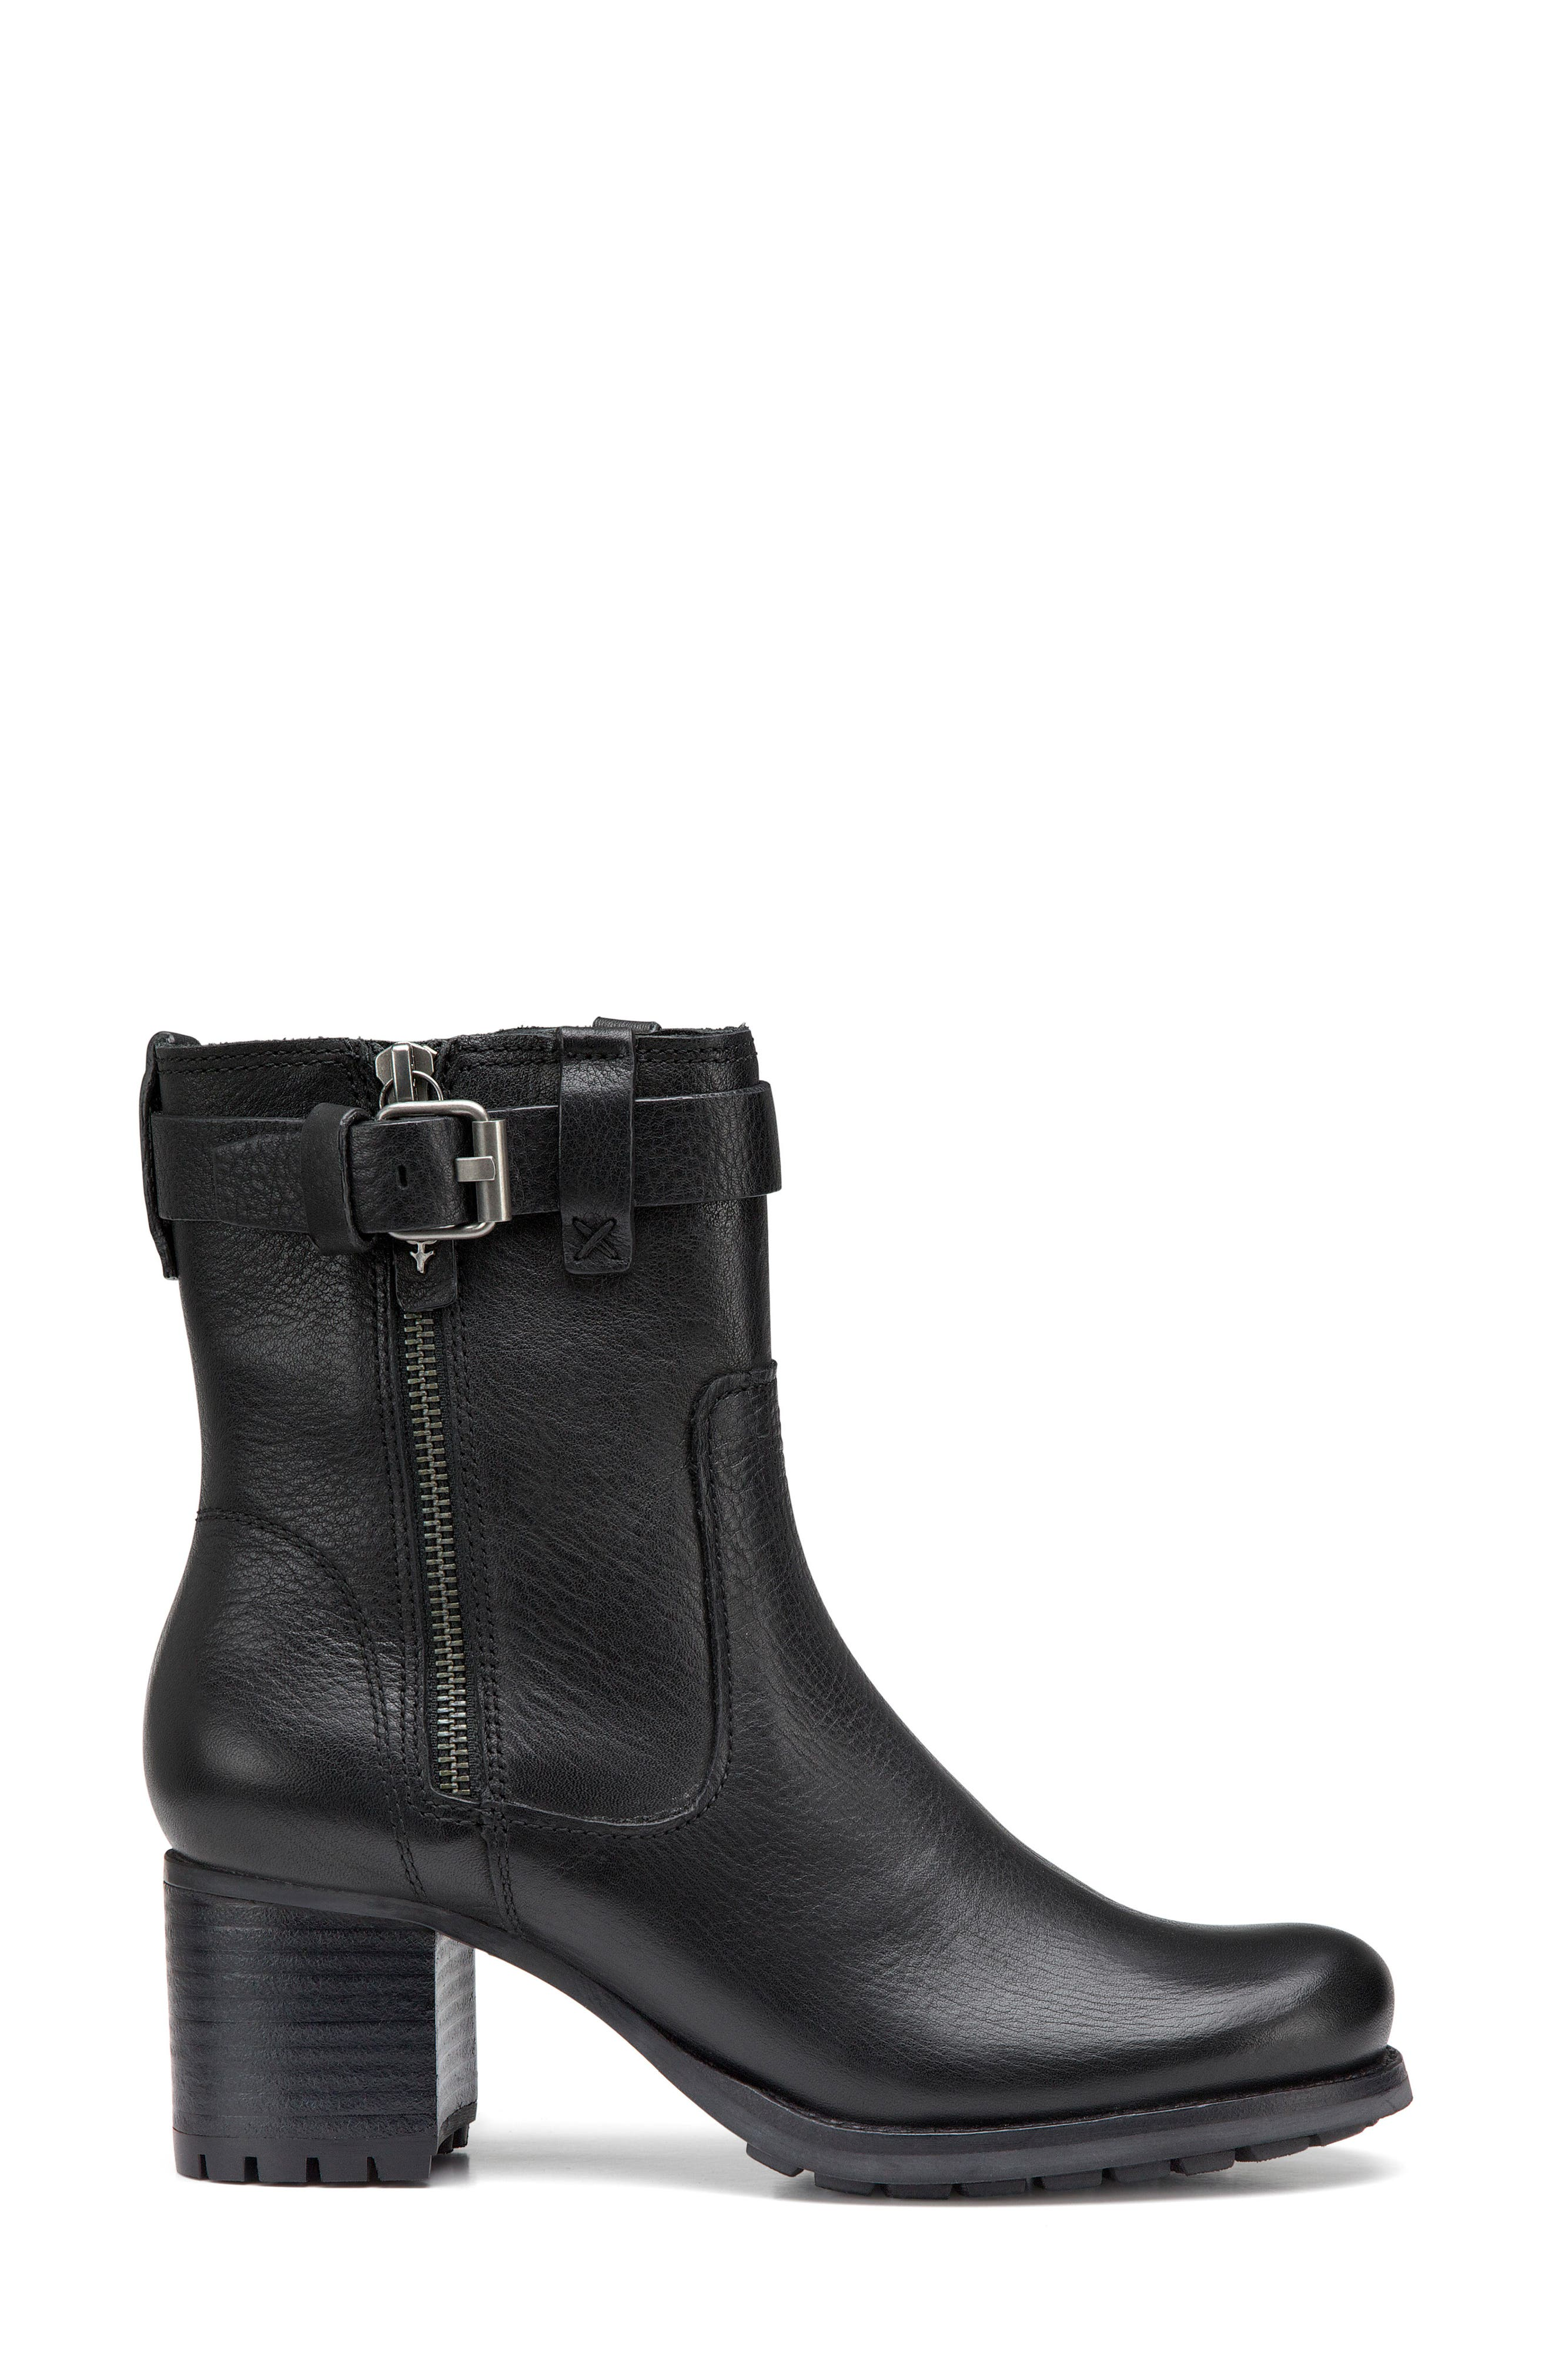 TRASK, Madison Waterproof Boot, Alternate thumbnail 3, color, BLACK LEATHER